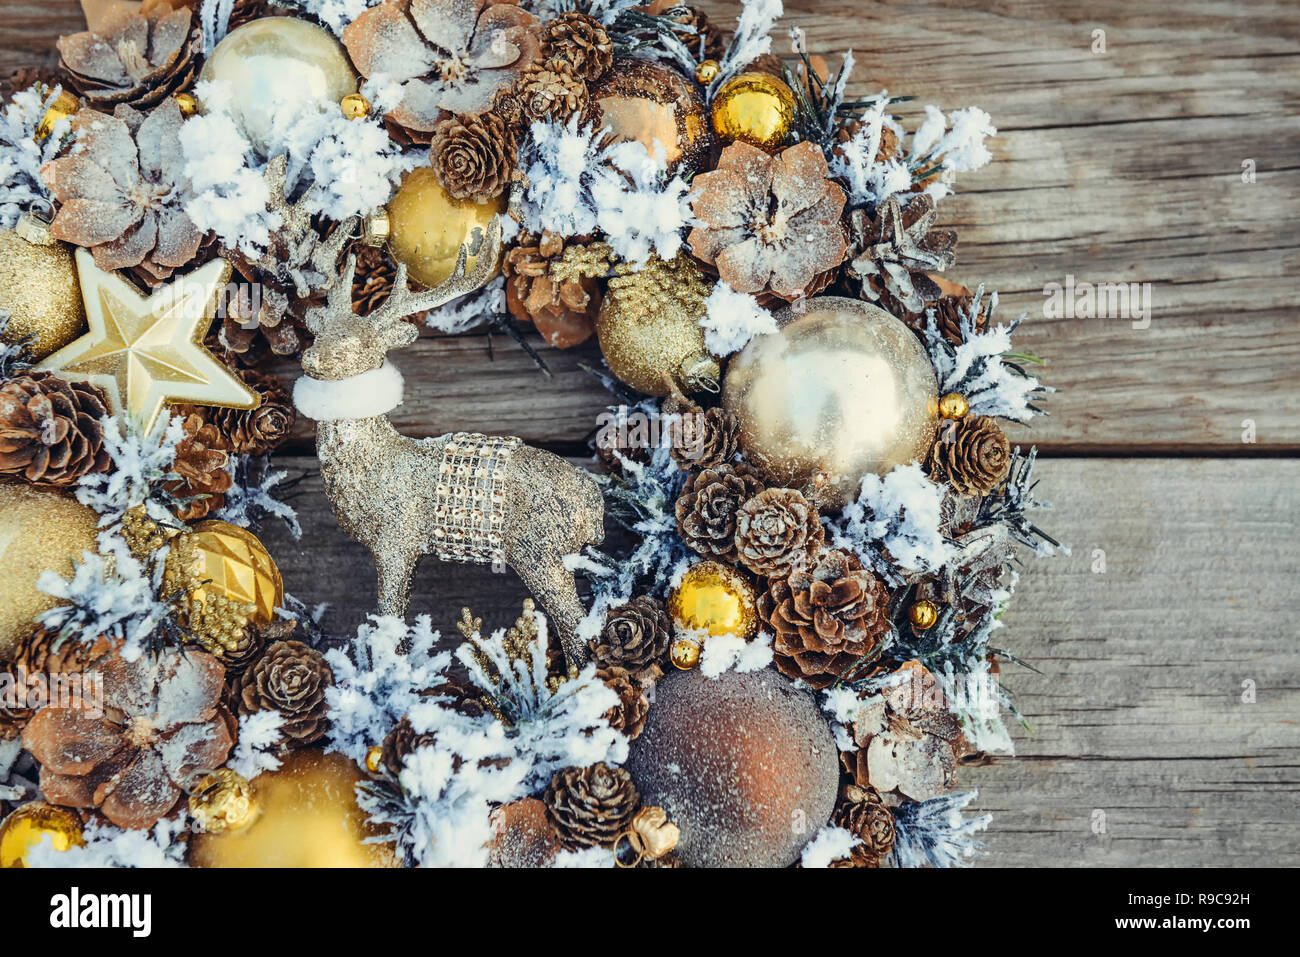 Top view Beautiful hand made golden Christmas wreath decorated with pine cones, ornamentals, spruce branches, balls, stars, decorative deer on rustic  - Stock Image